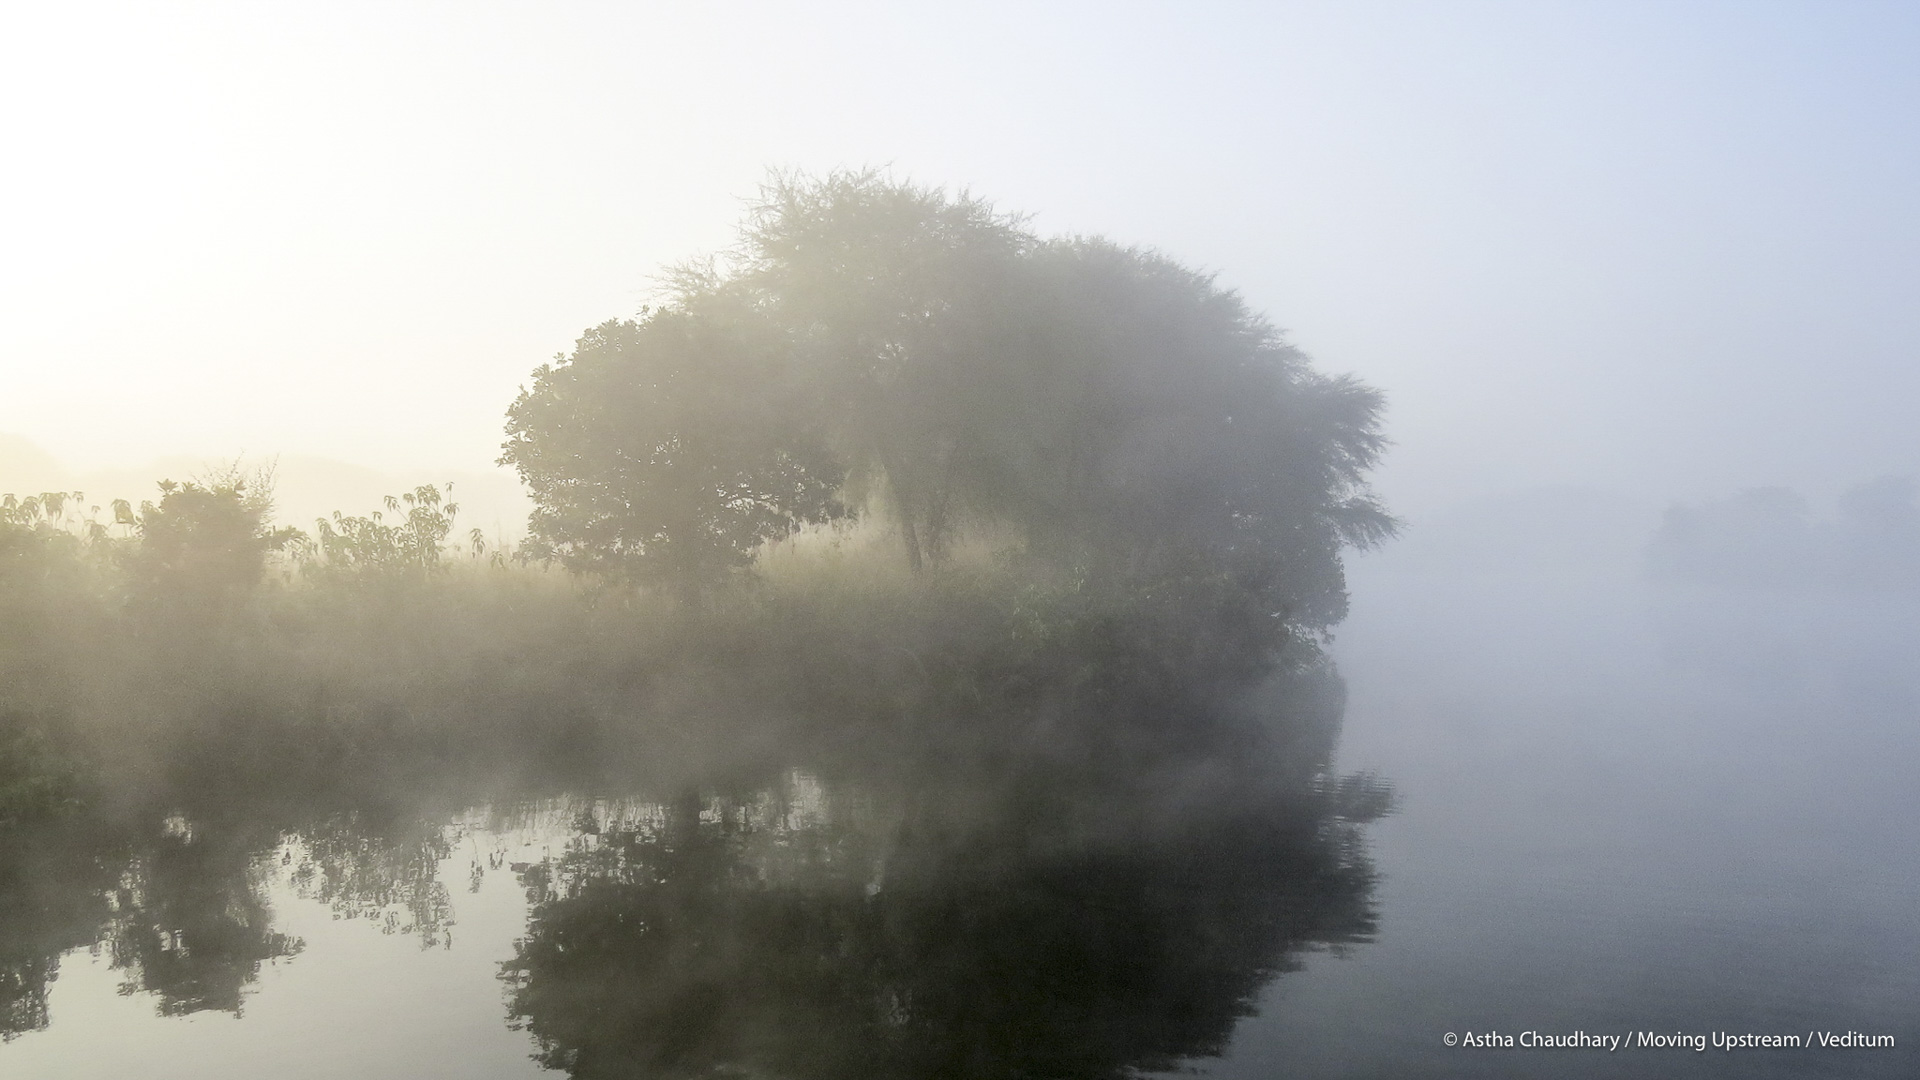 A misty morning on the Betwa